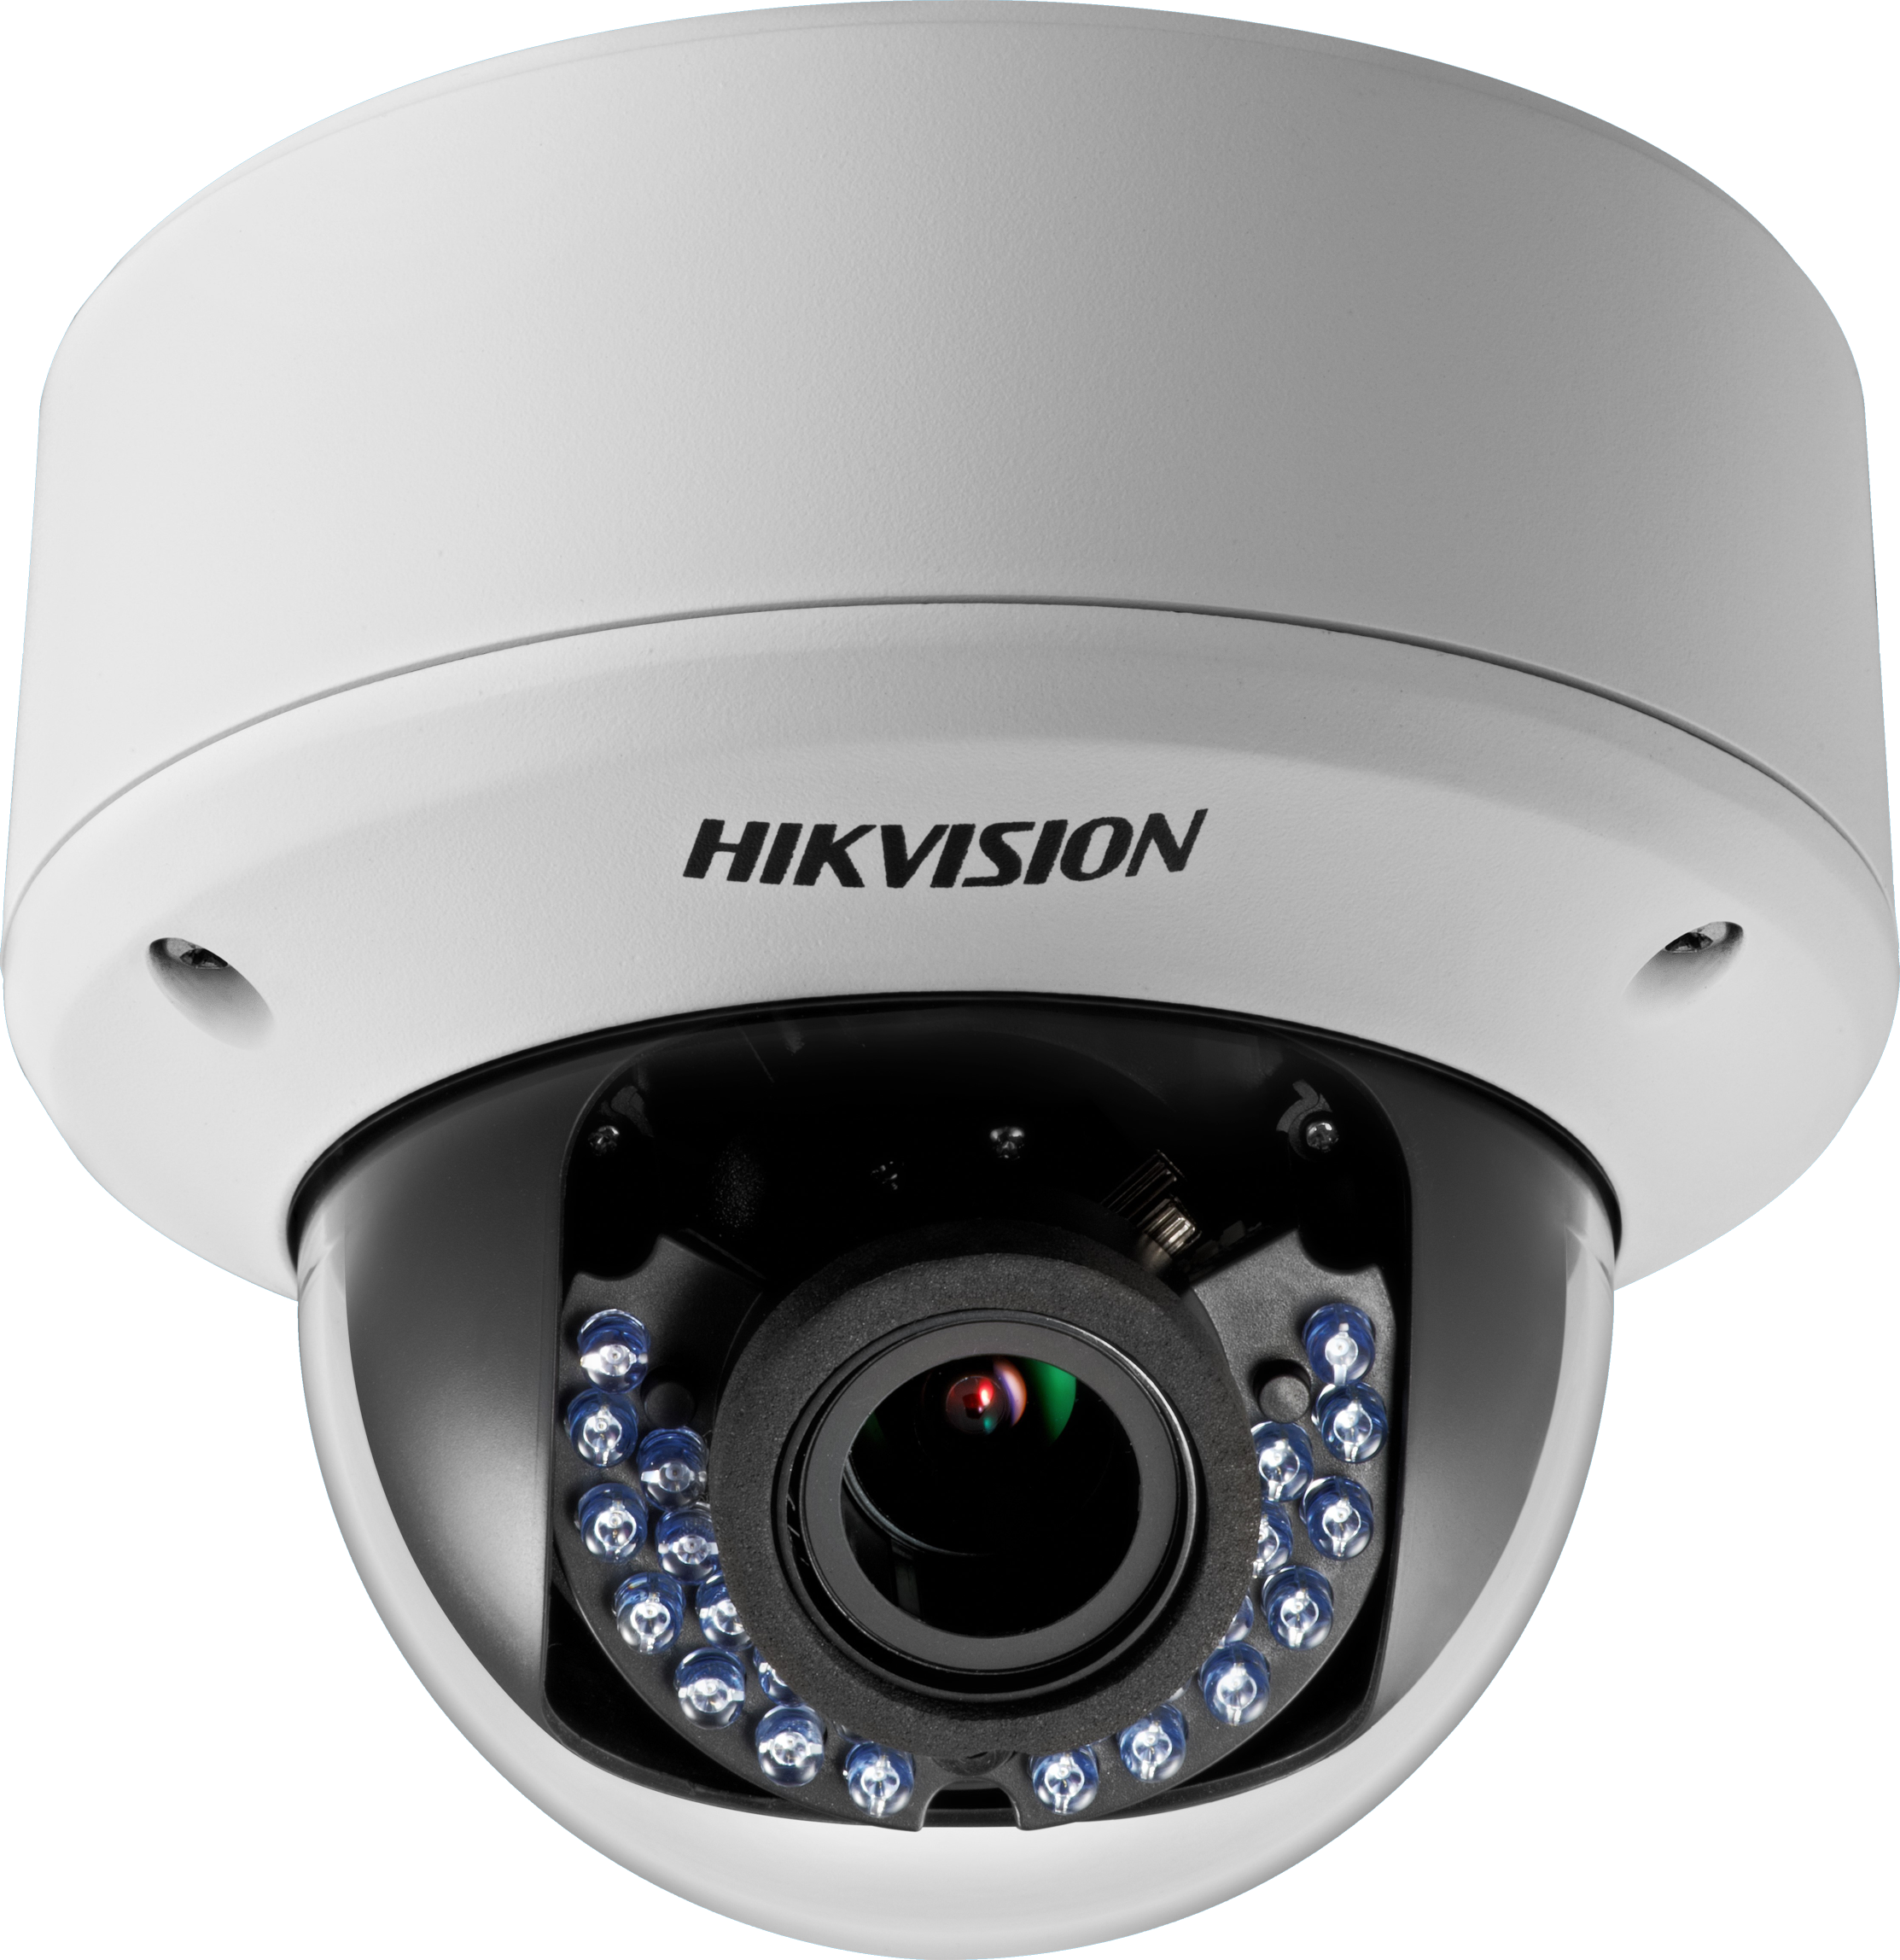 CCTV Systems homes